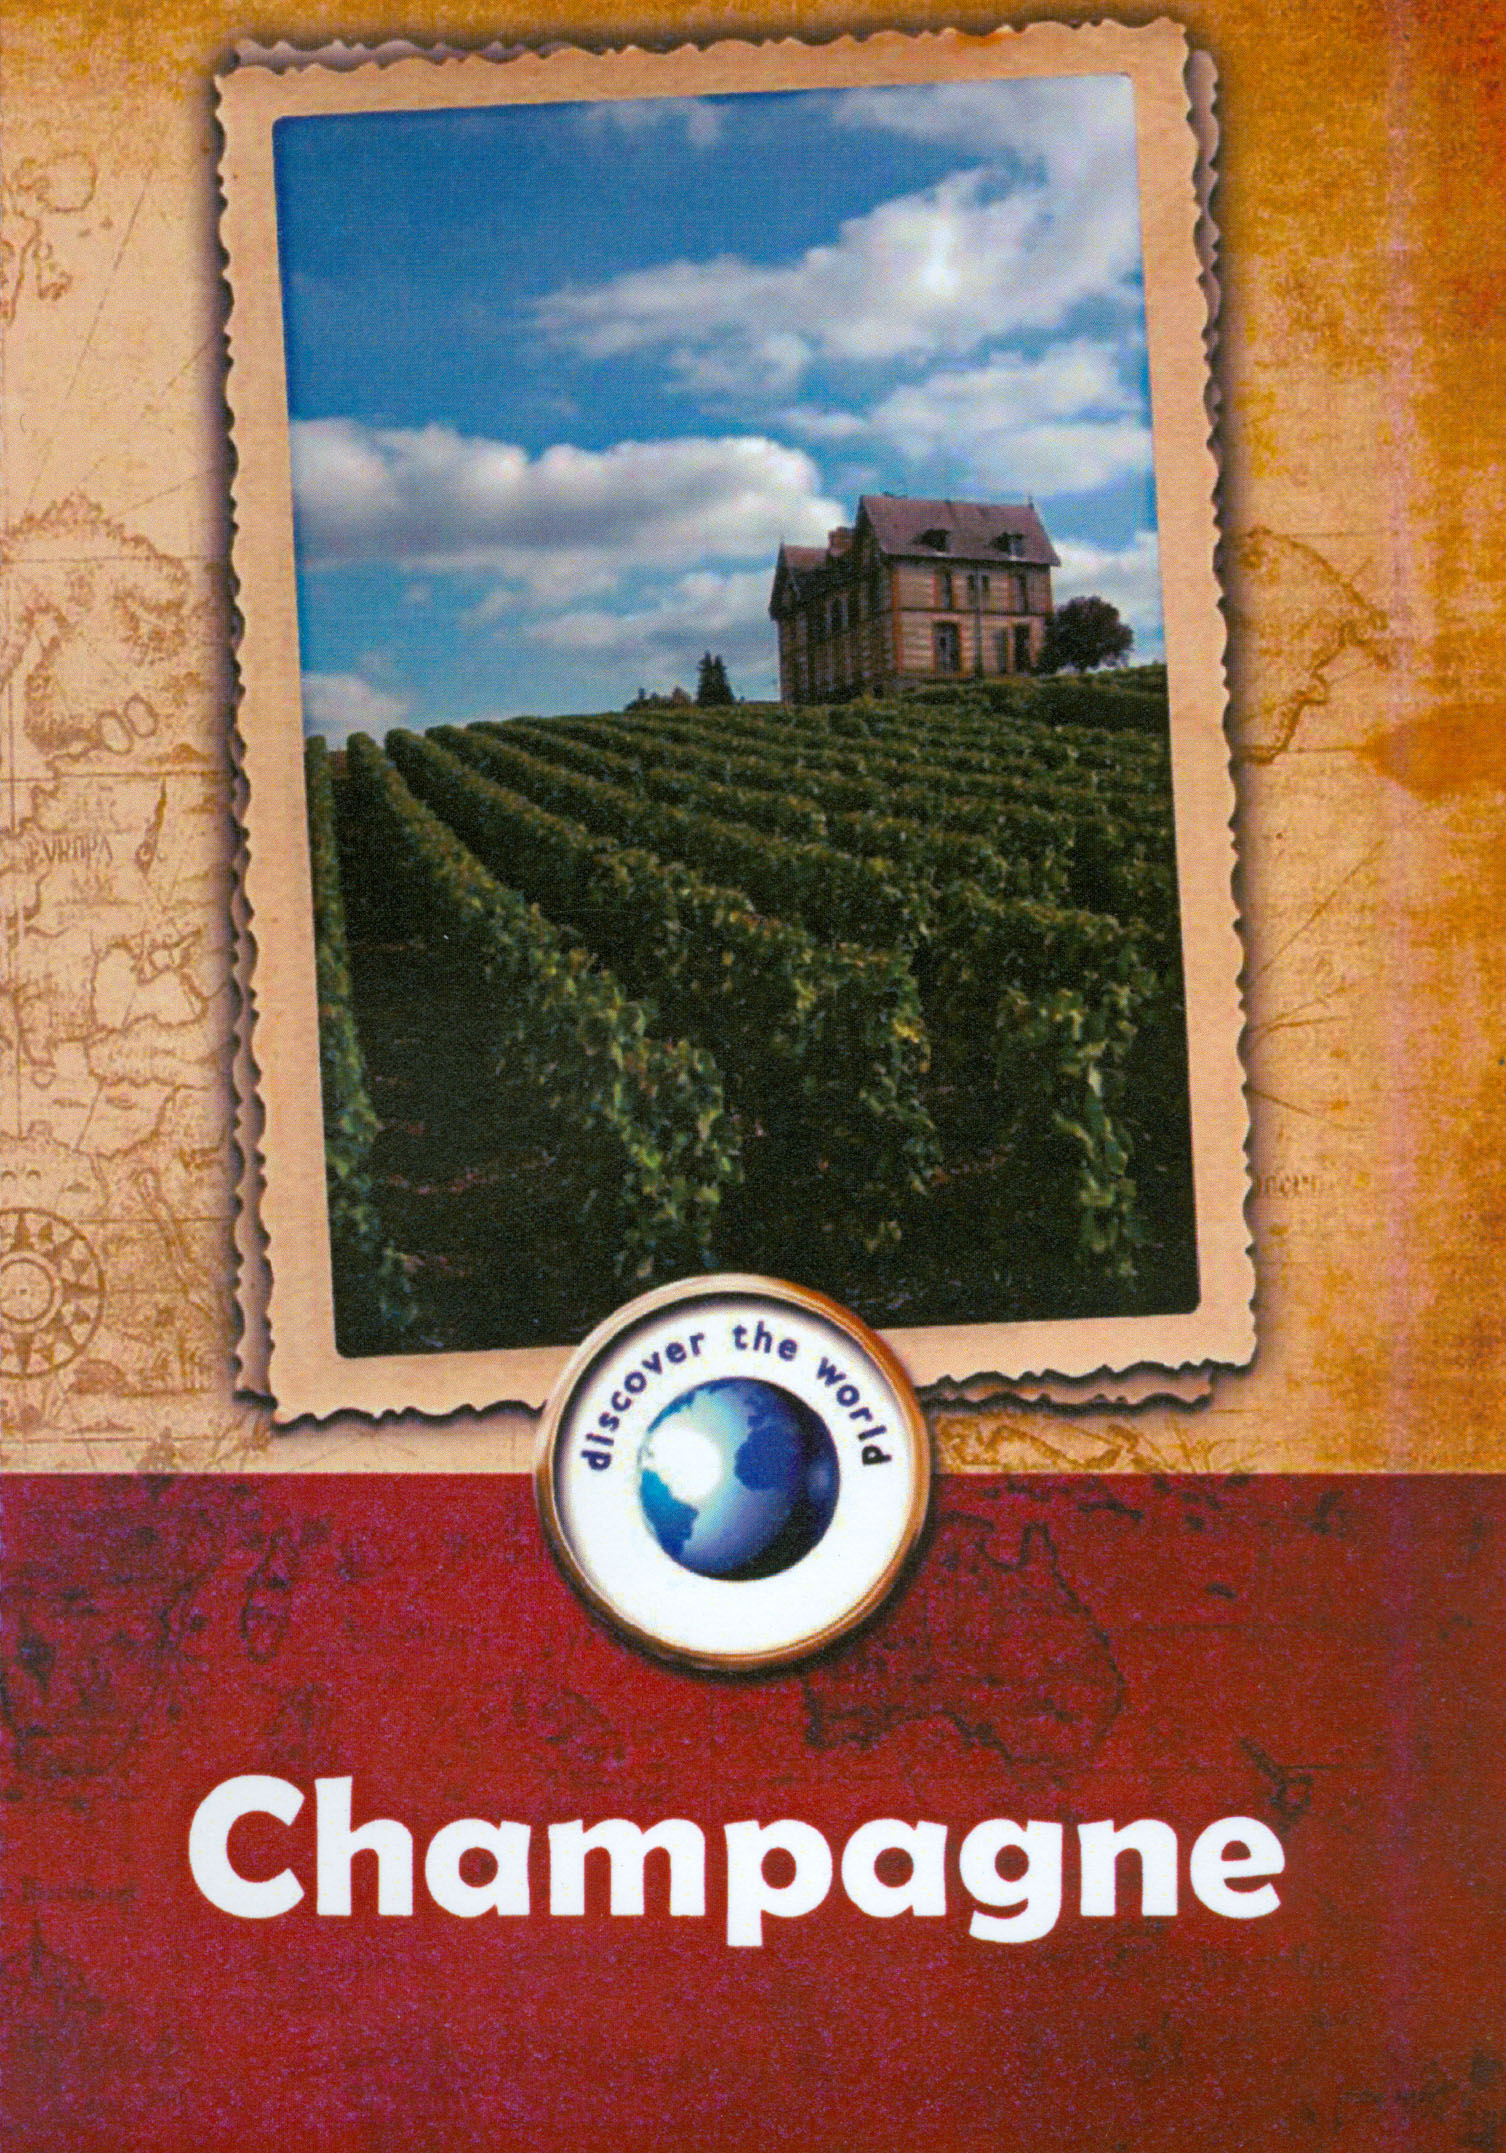 Discover the World: Champagne